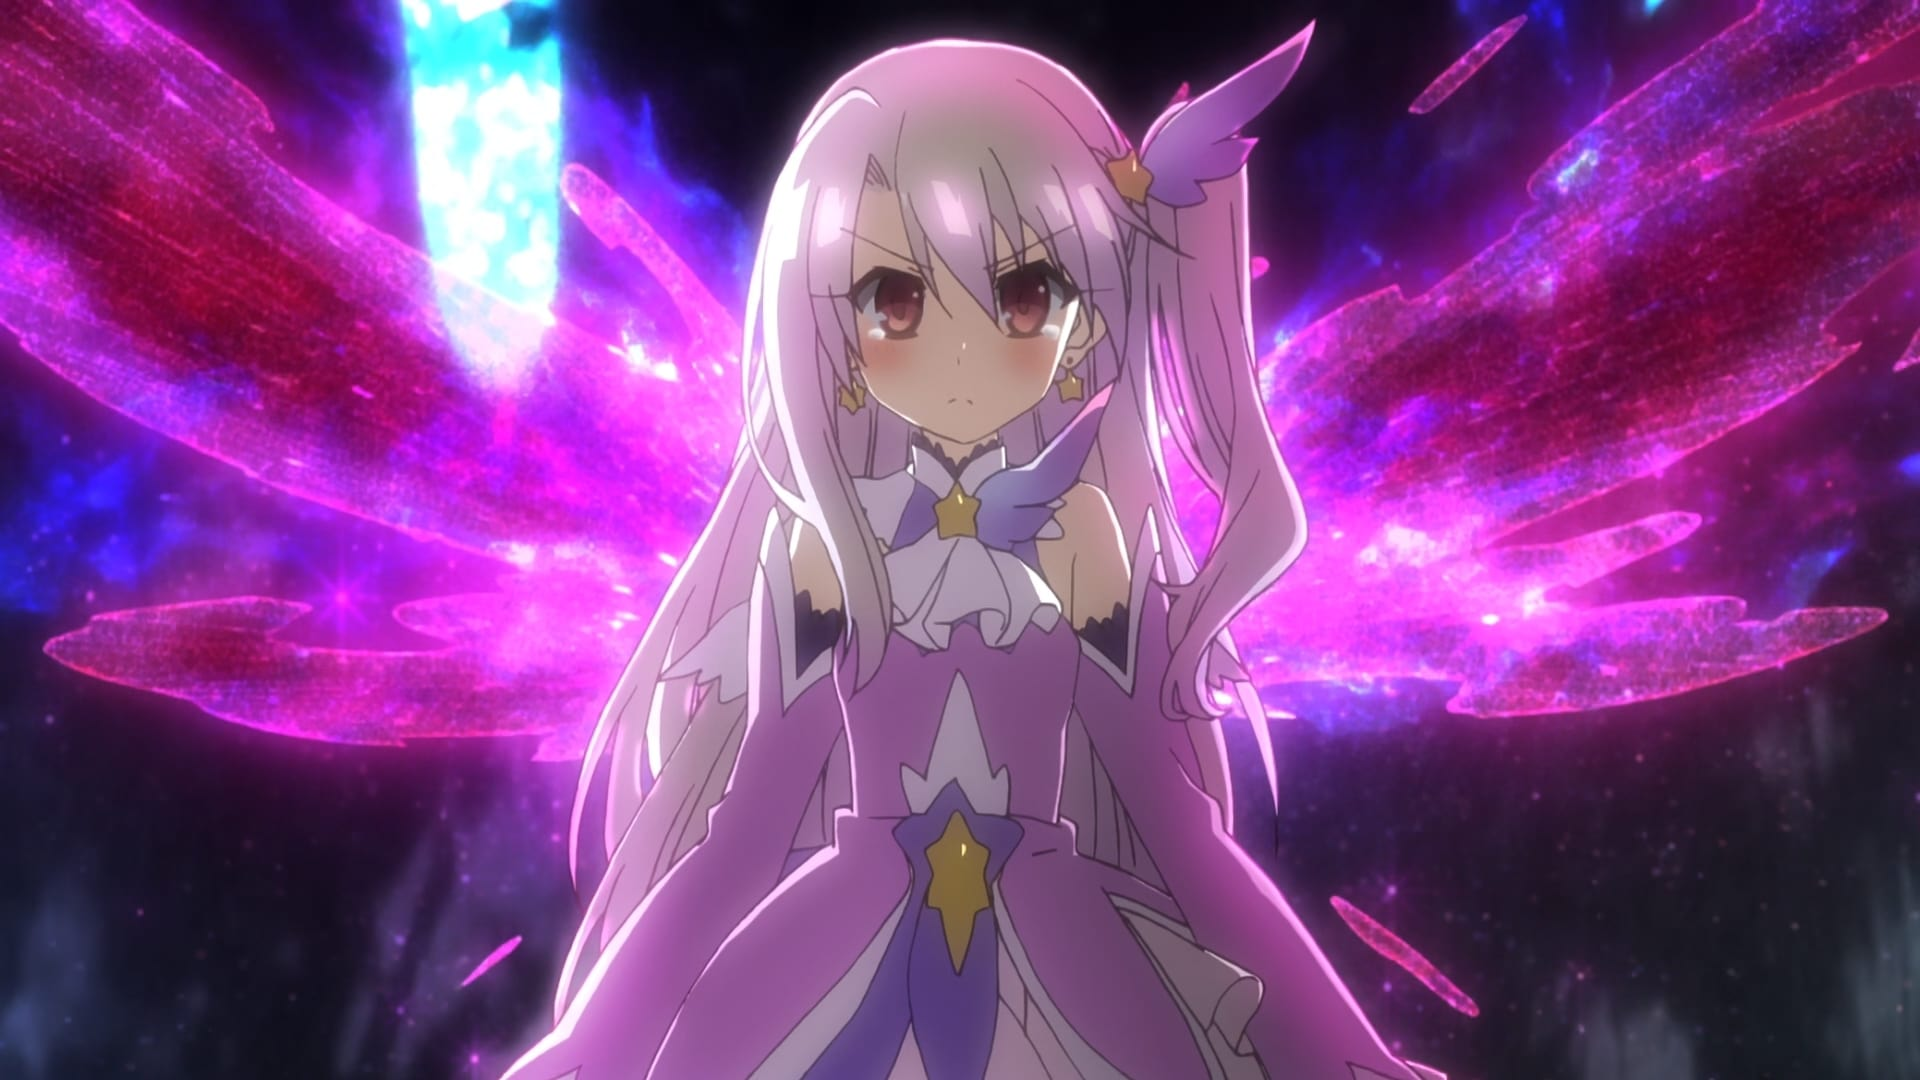 Fate Kaleid Liner Prisma Illya Calling Your Name From A Corner